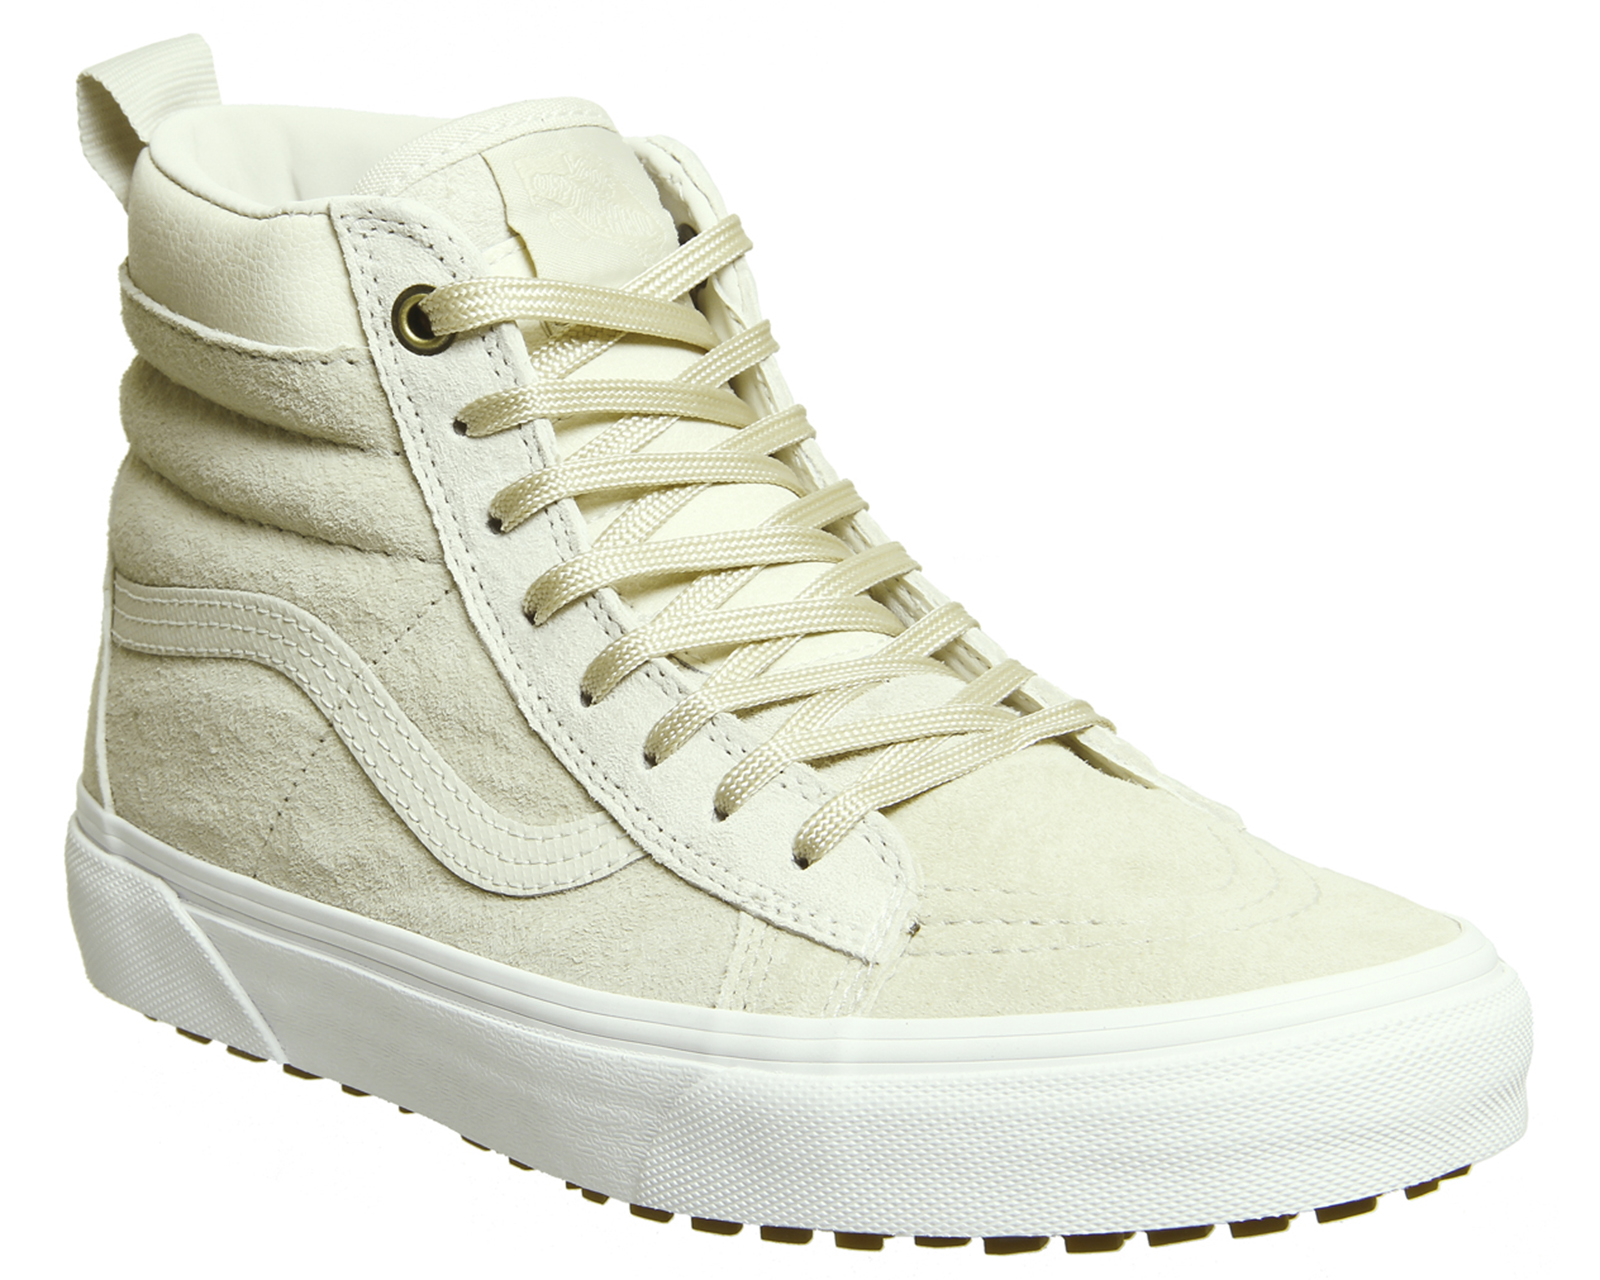 73f2a5a057ee Sentinel Womens Vans Sk8 Hi Mte Cement Birch Trainers Shoes